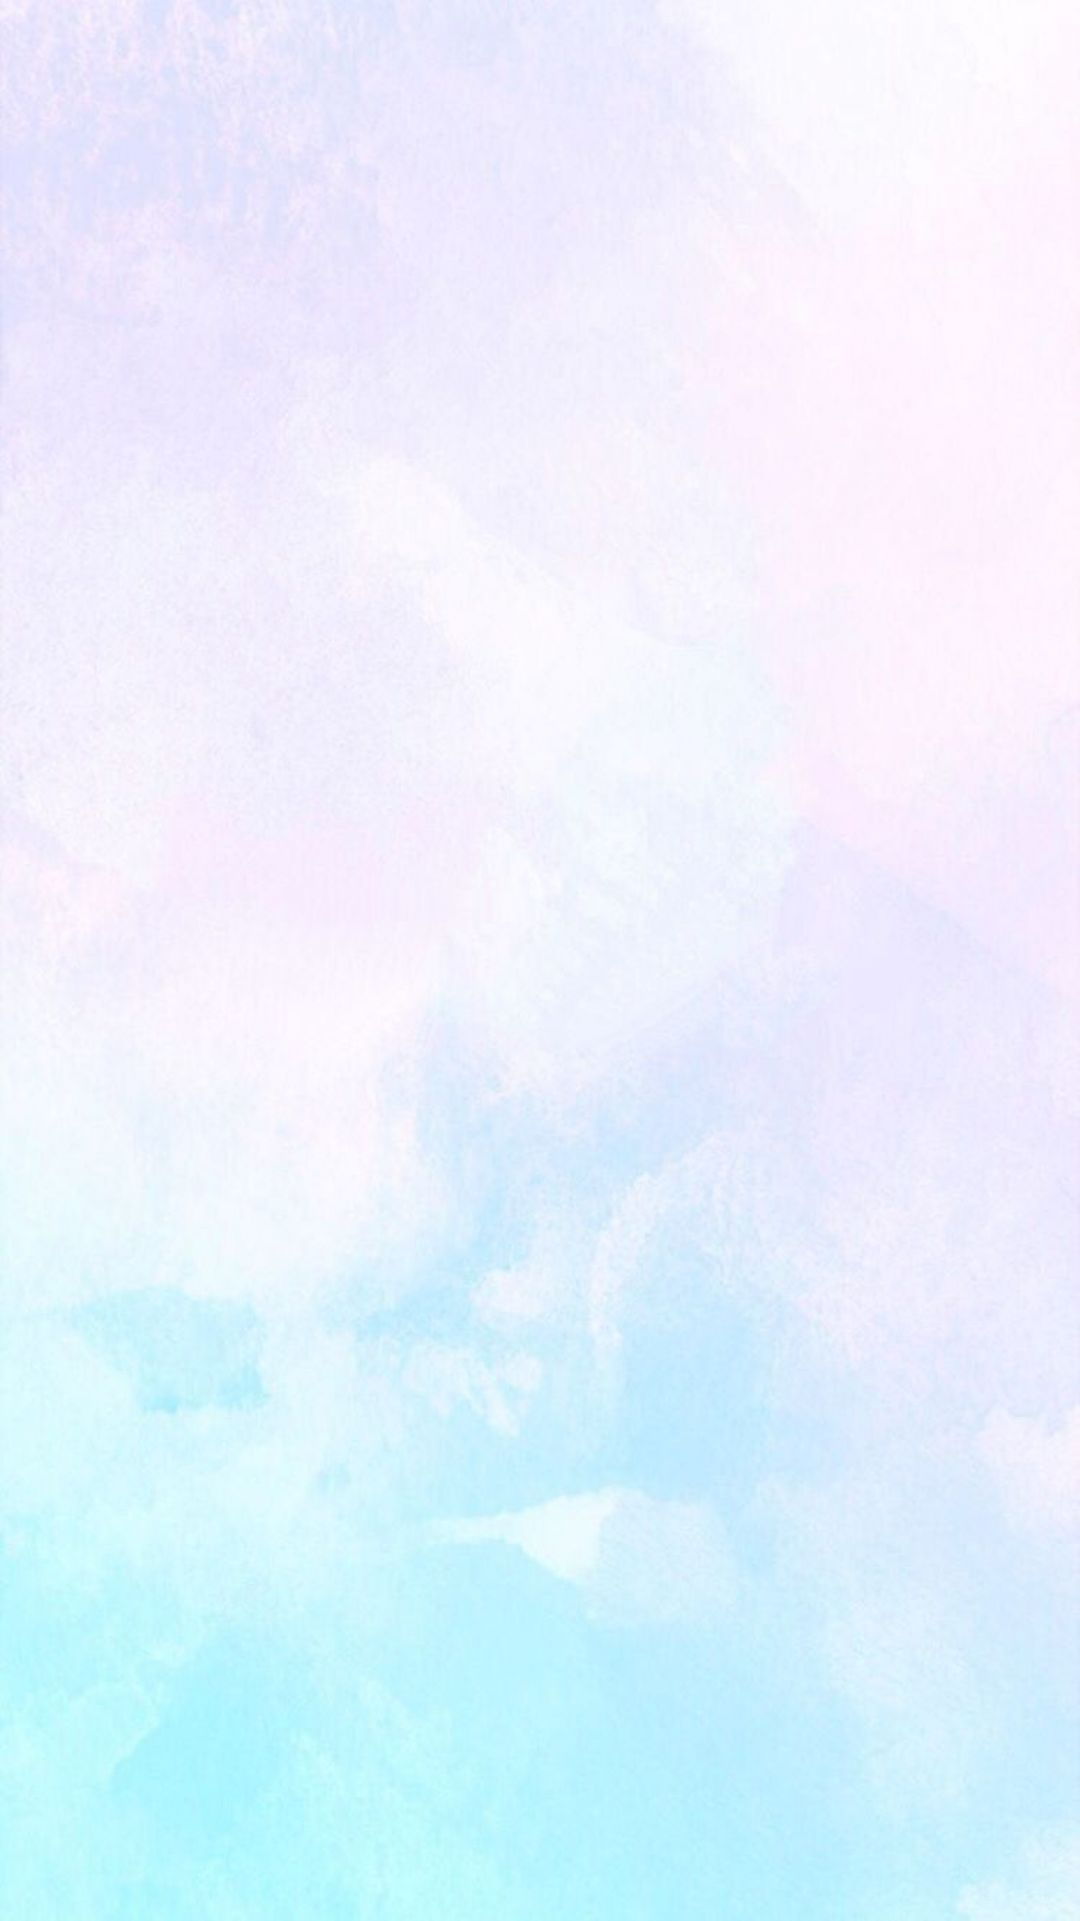 Pastels Computer Android Iphone Desktop Hd Backgrounds